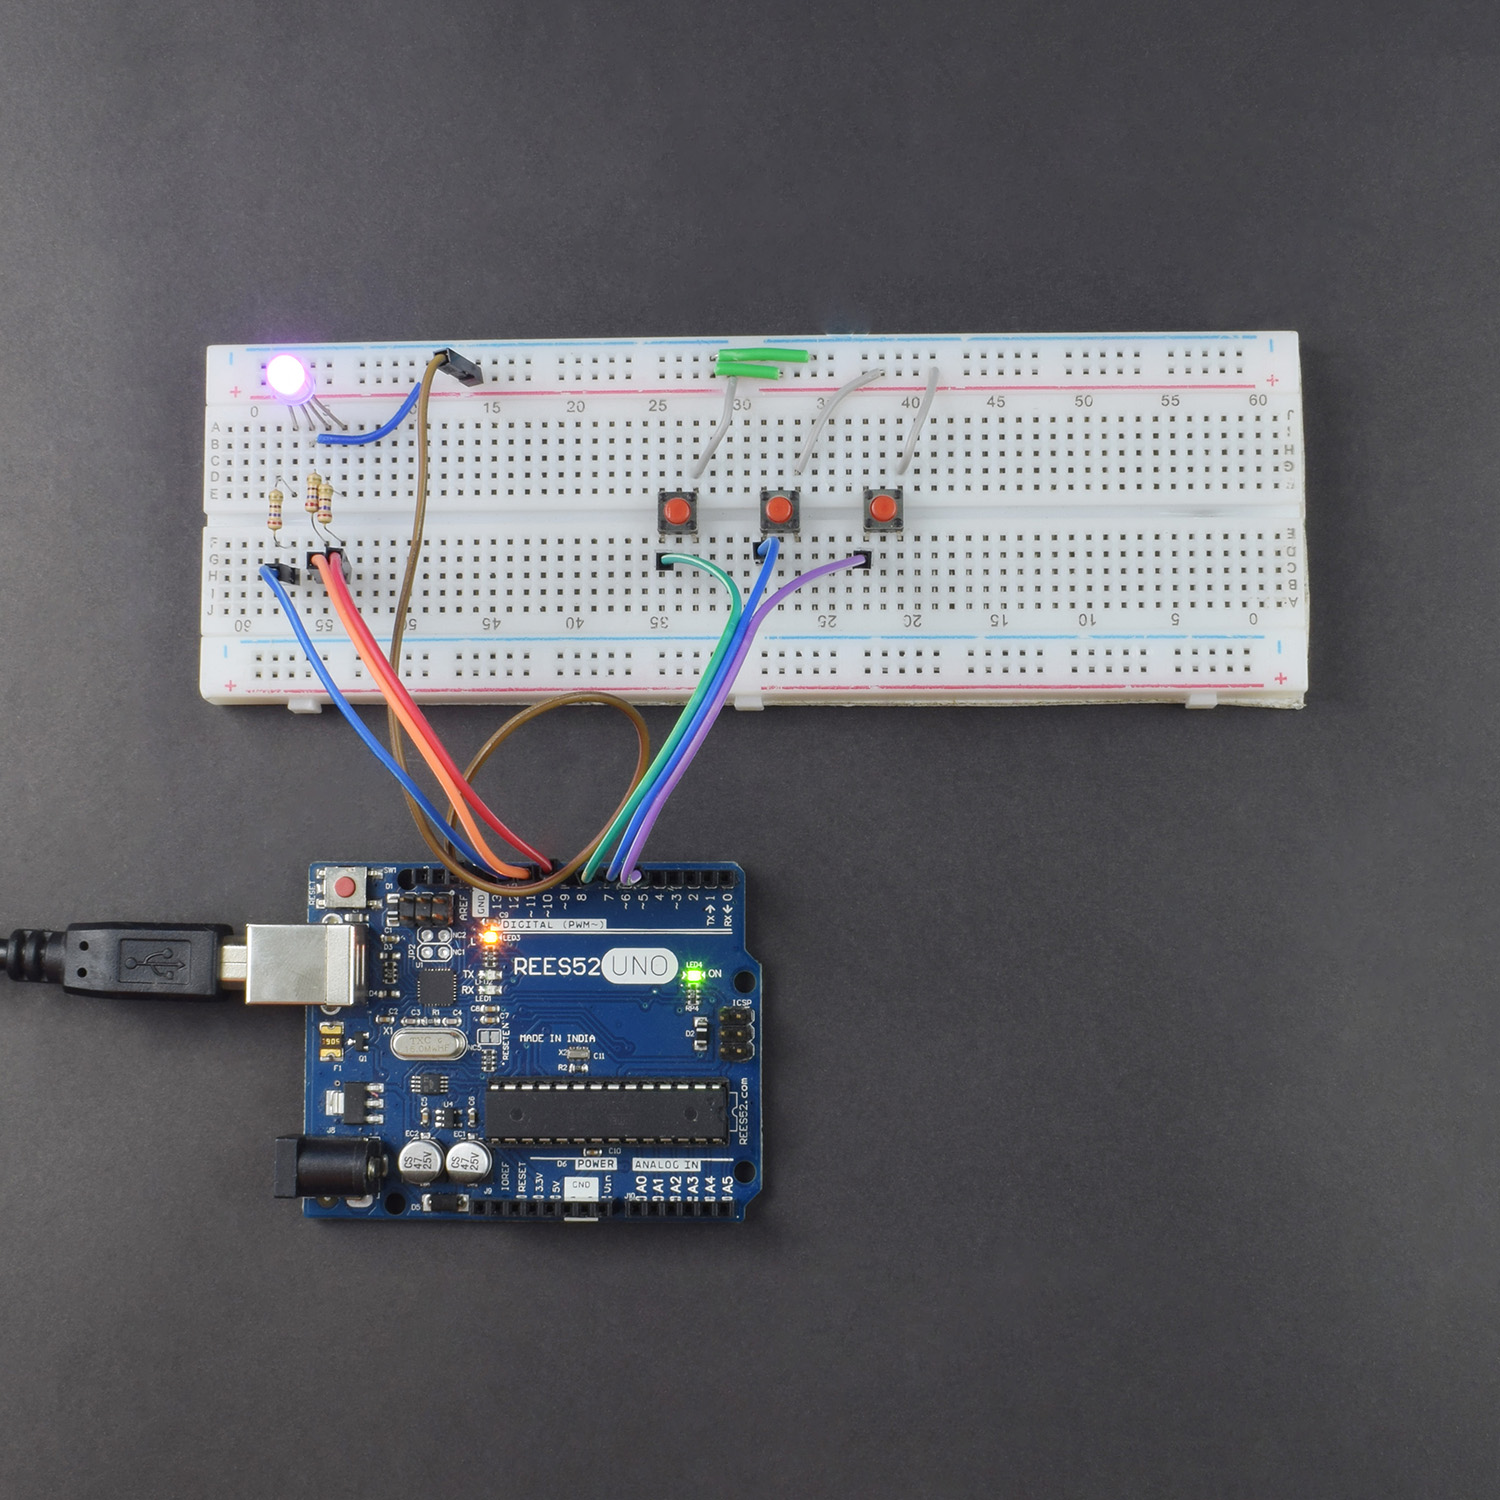 Control a RGB Led using push button to change colour interfacing